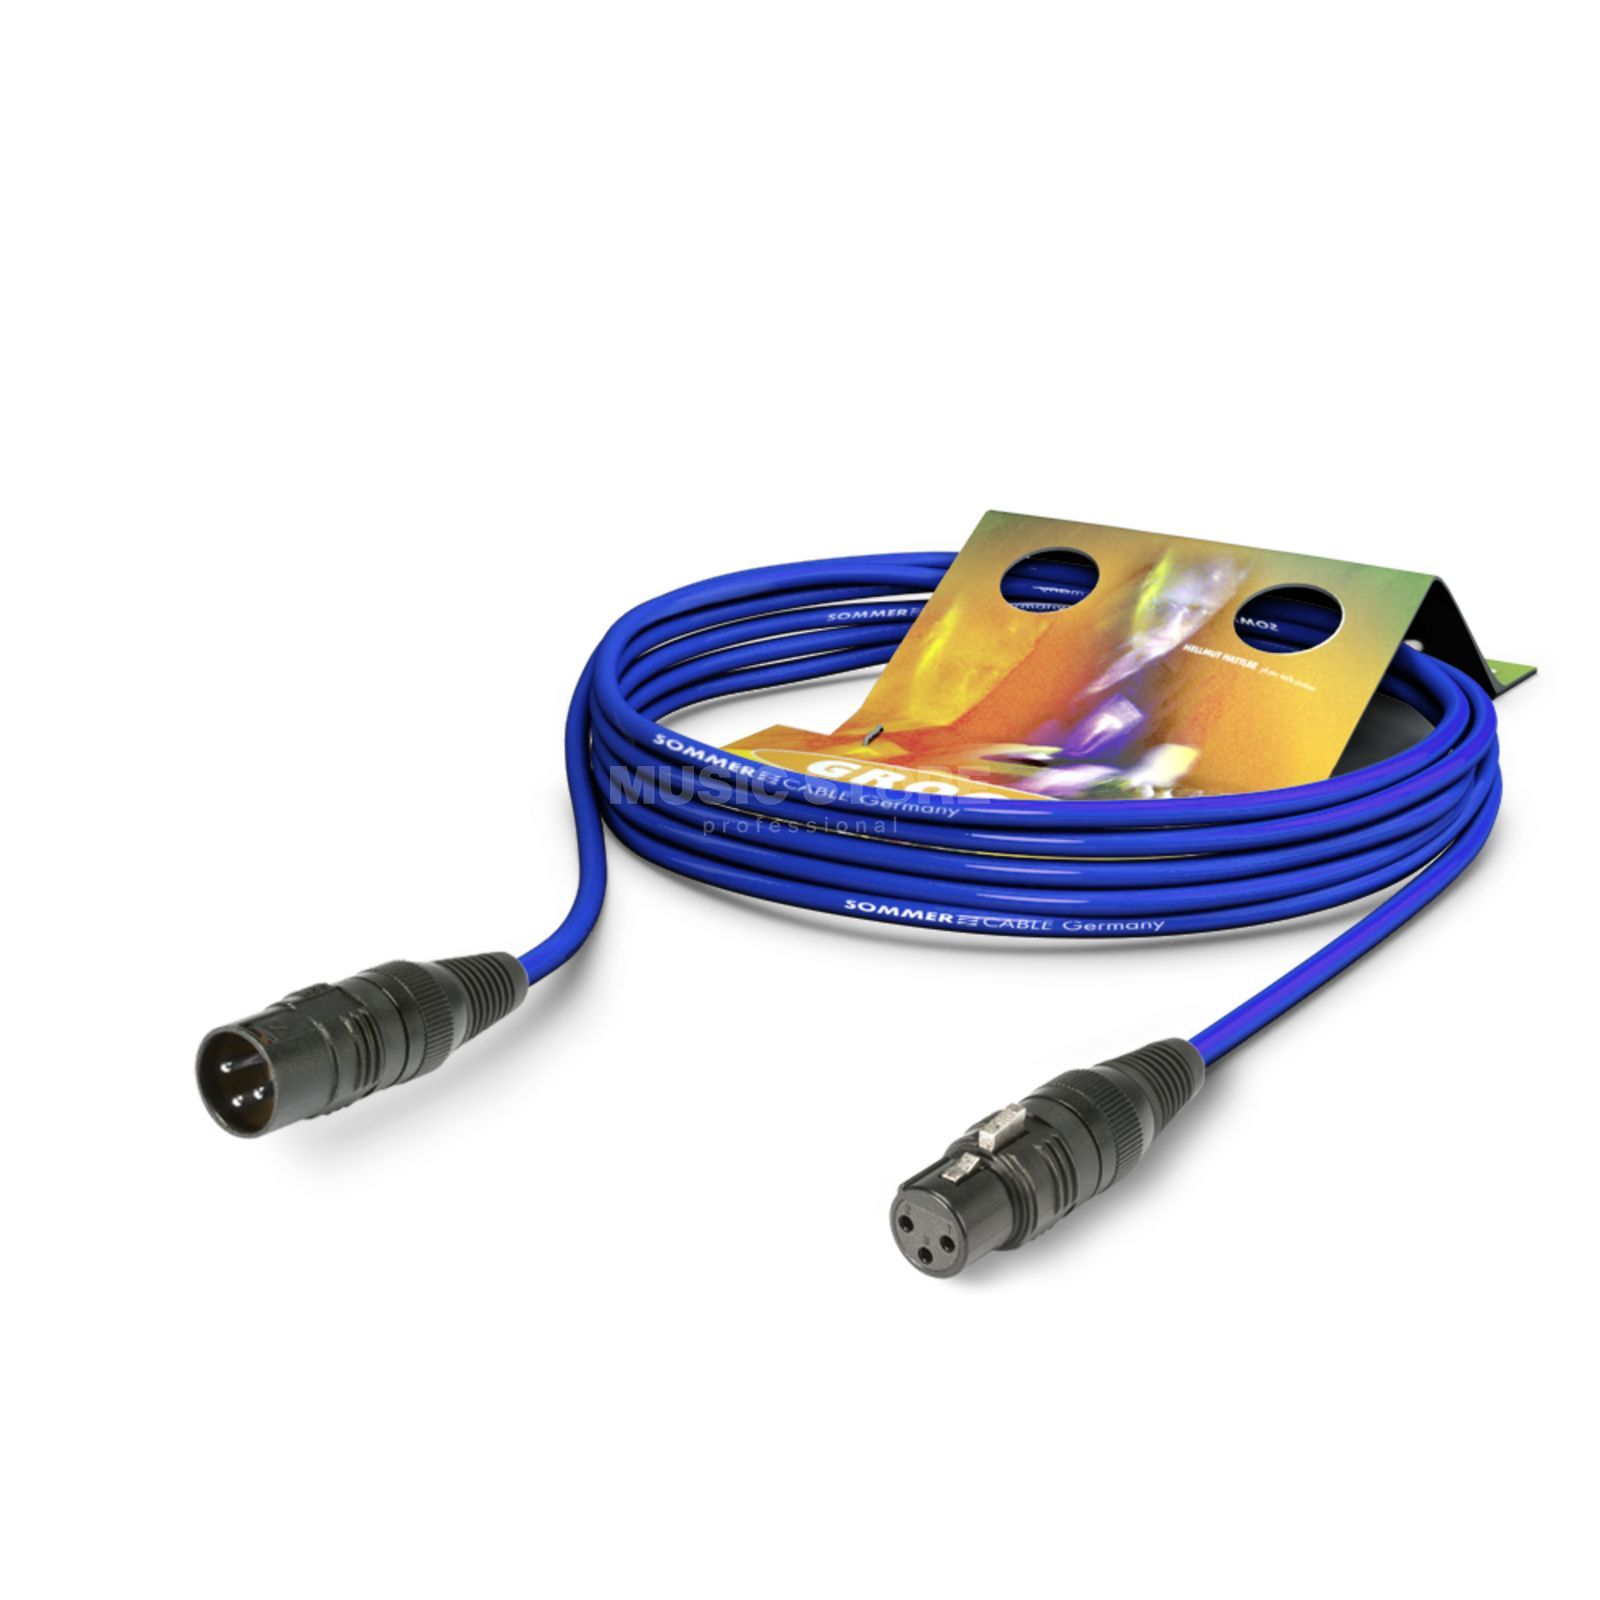 Sommer Cable SGCE-0600 BL Microphone Cable 6m blue, HICON Produktbillede